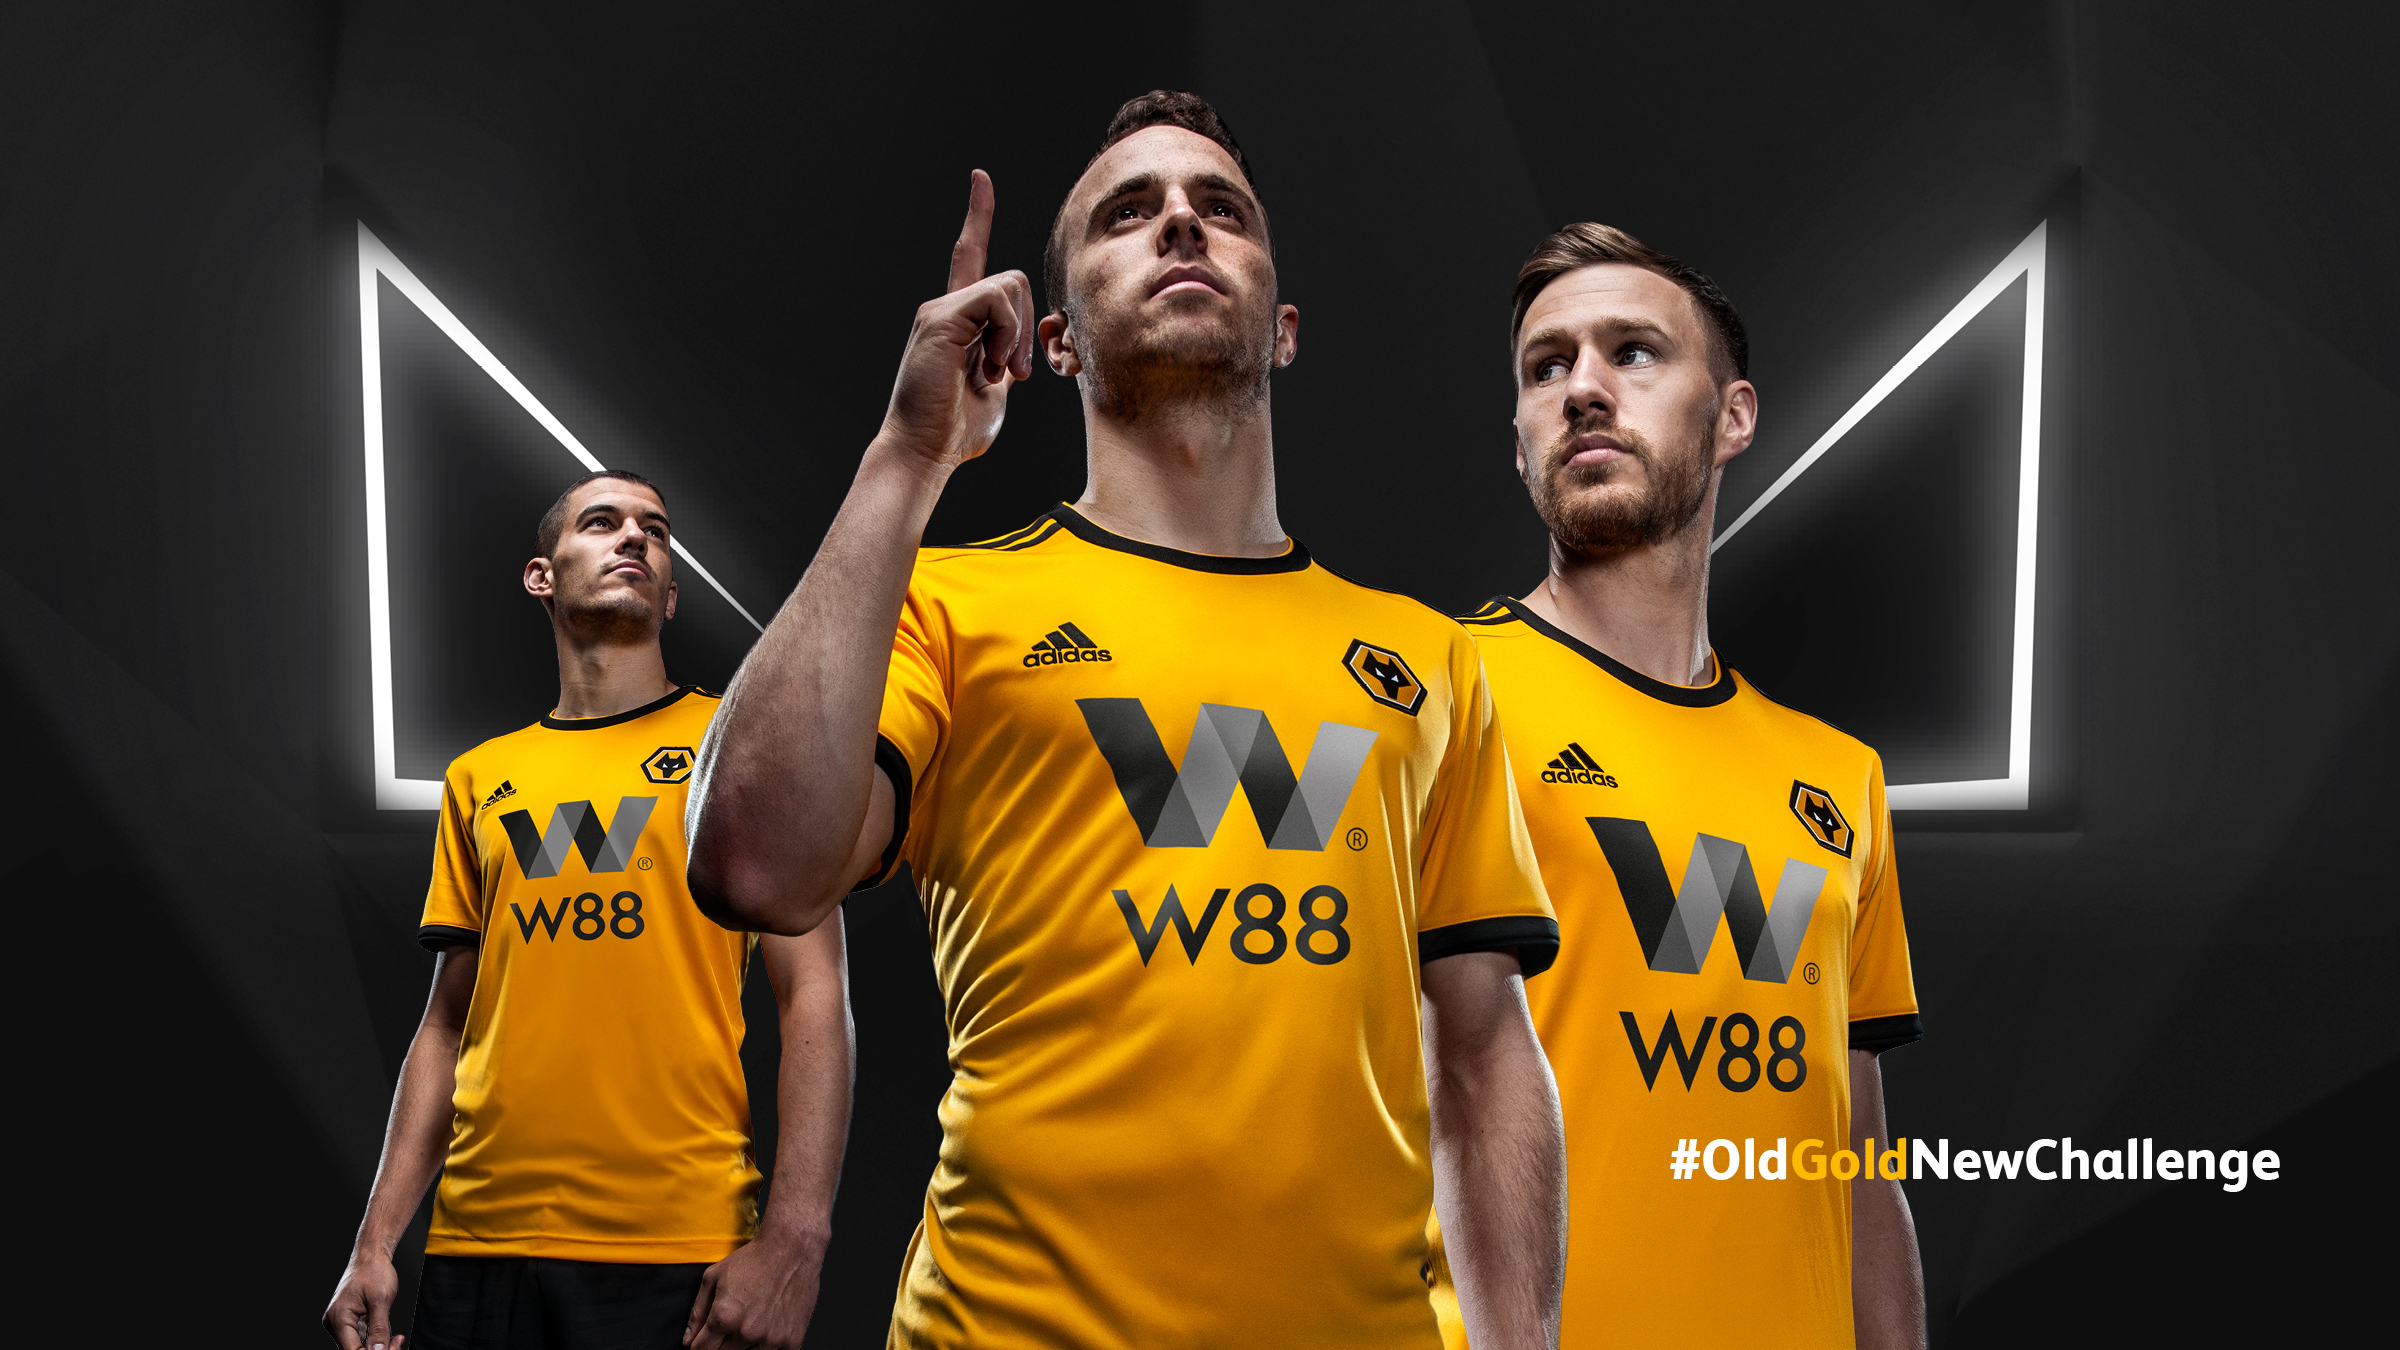 bde964f41a6 Wolverhampton Wanderers 2018 19 Home and Away Kits by Adidas